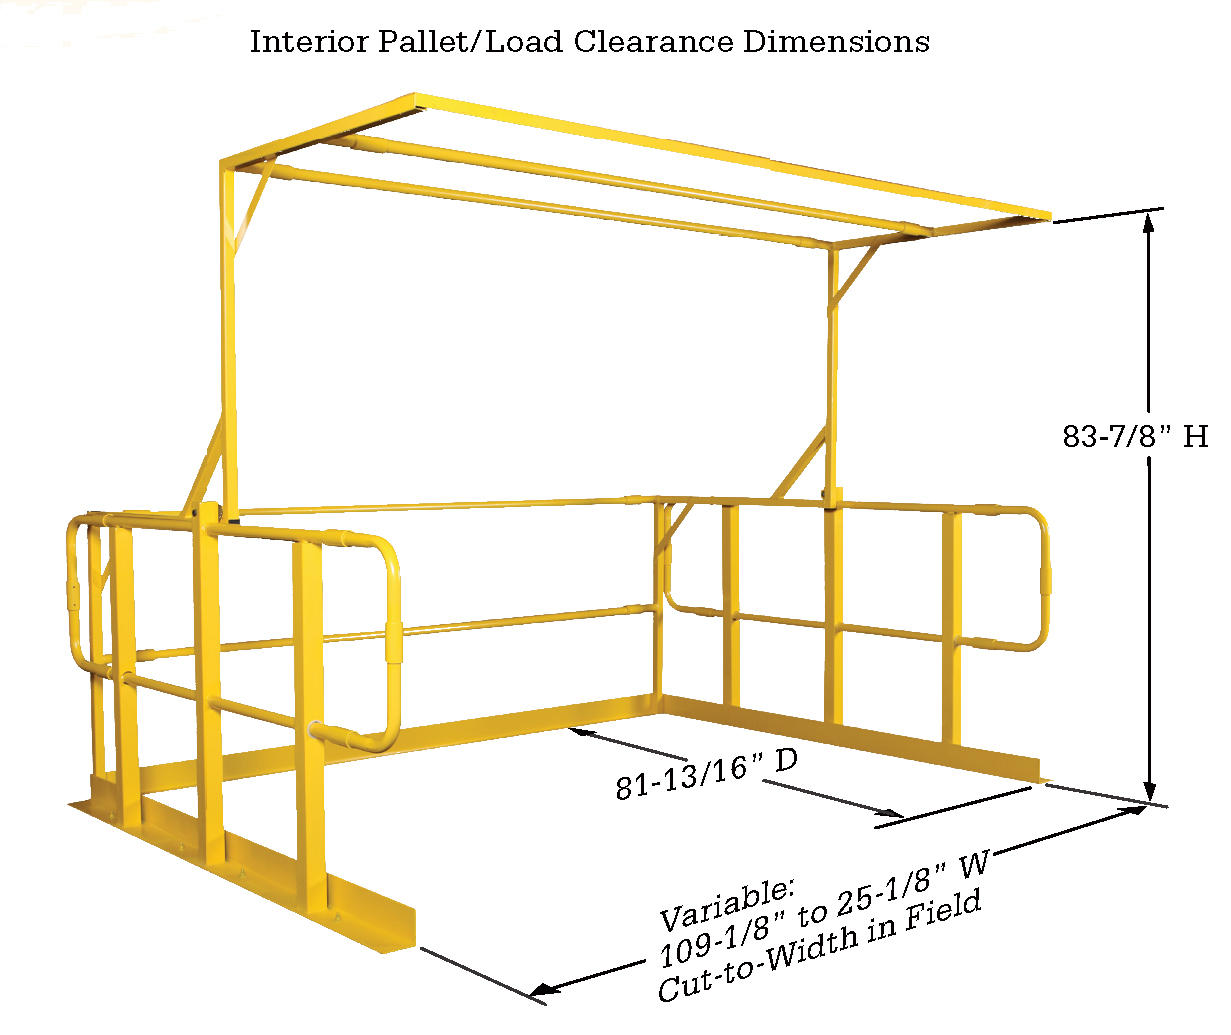 Pivot-Safety-Gate-Dimensions